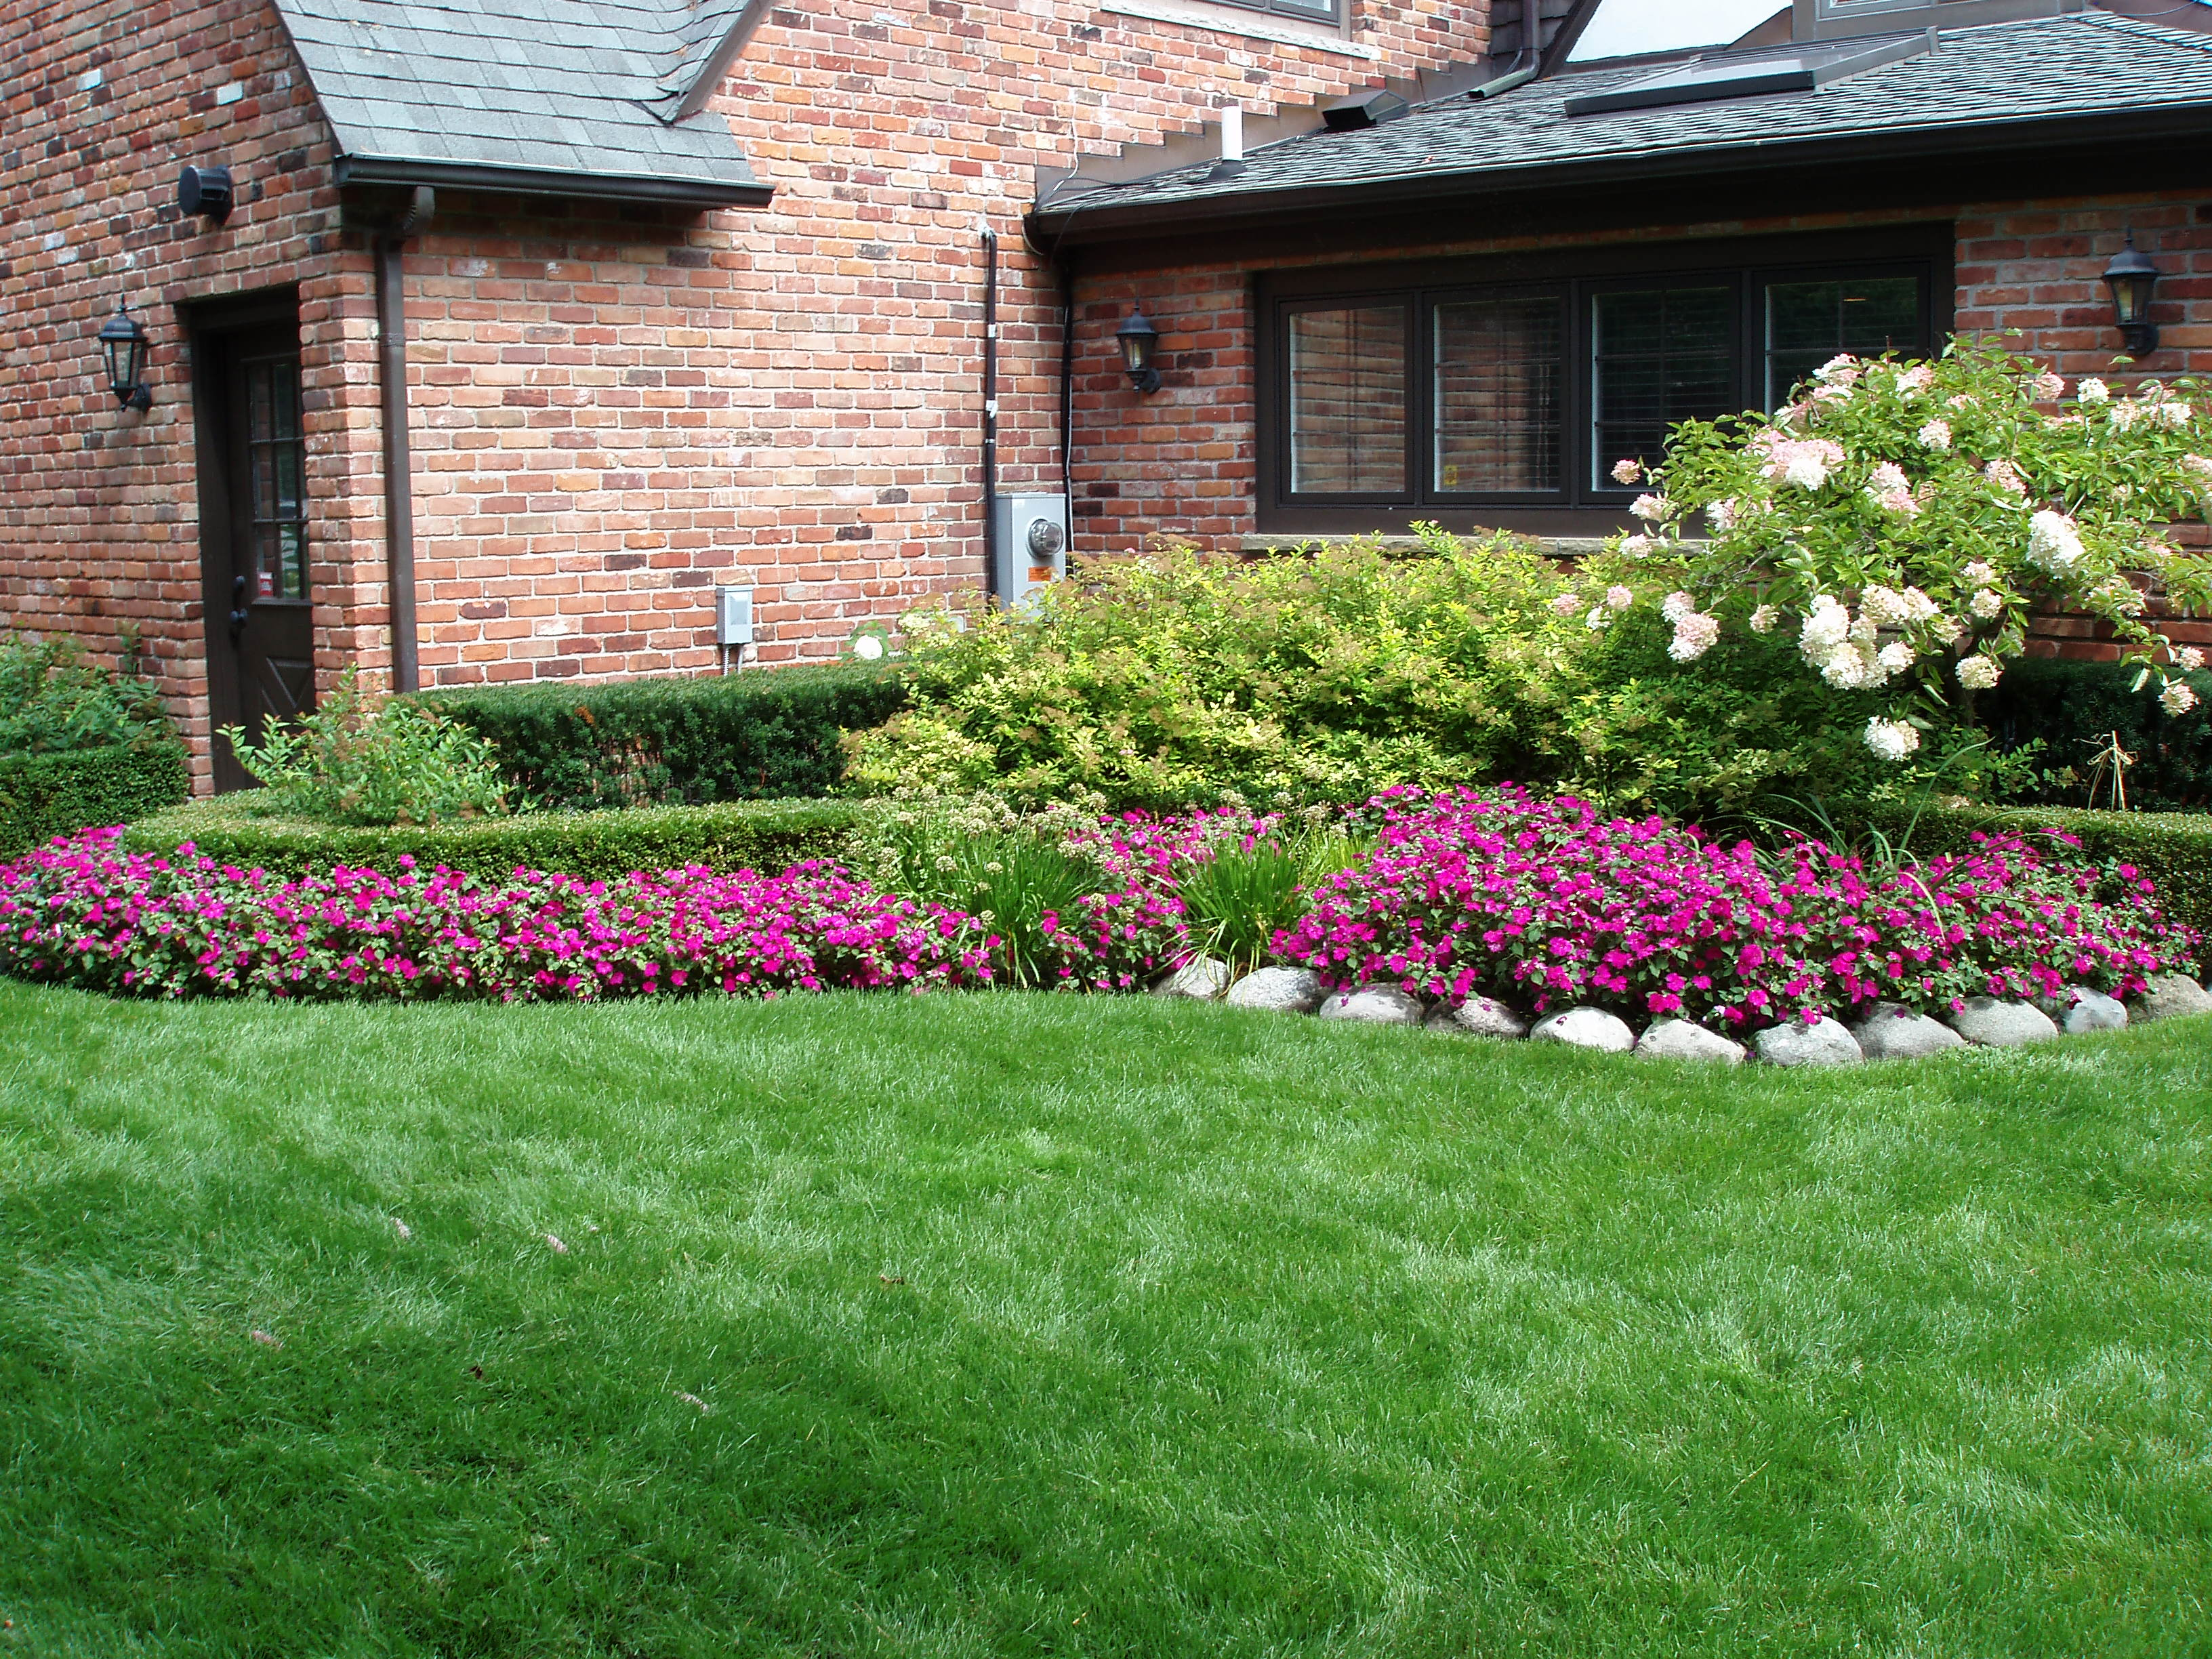 Landscaping total lawn care inc full lawn maintenance for Yard landscaping ideas